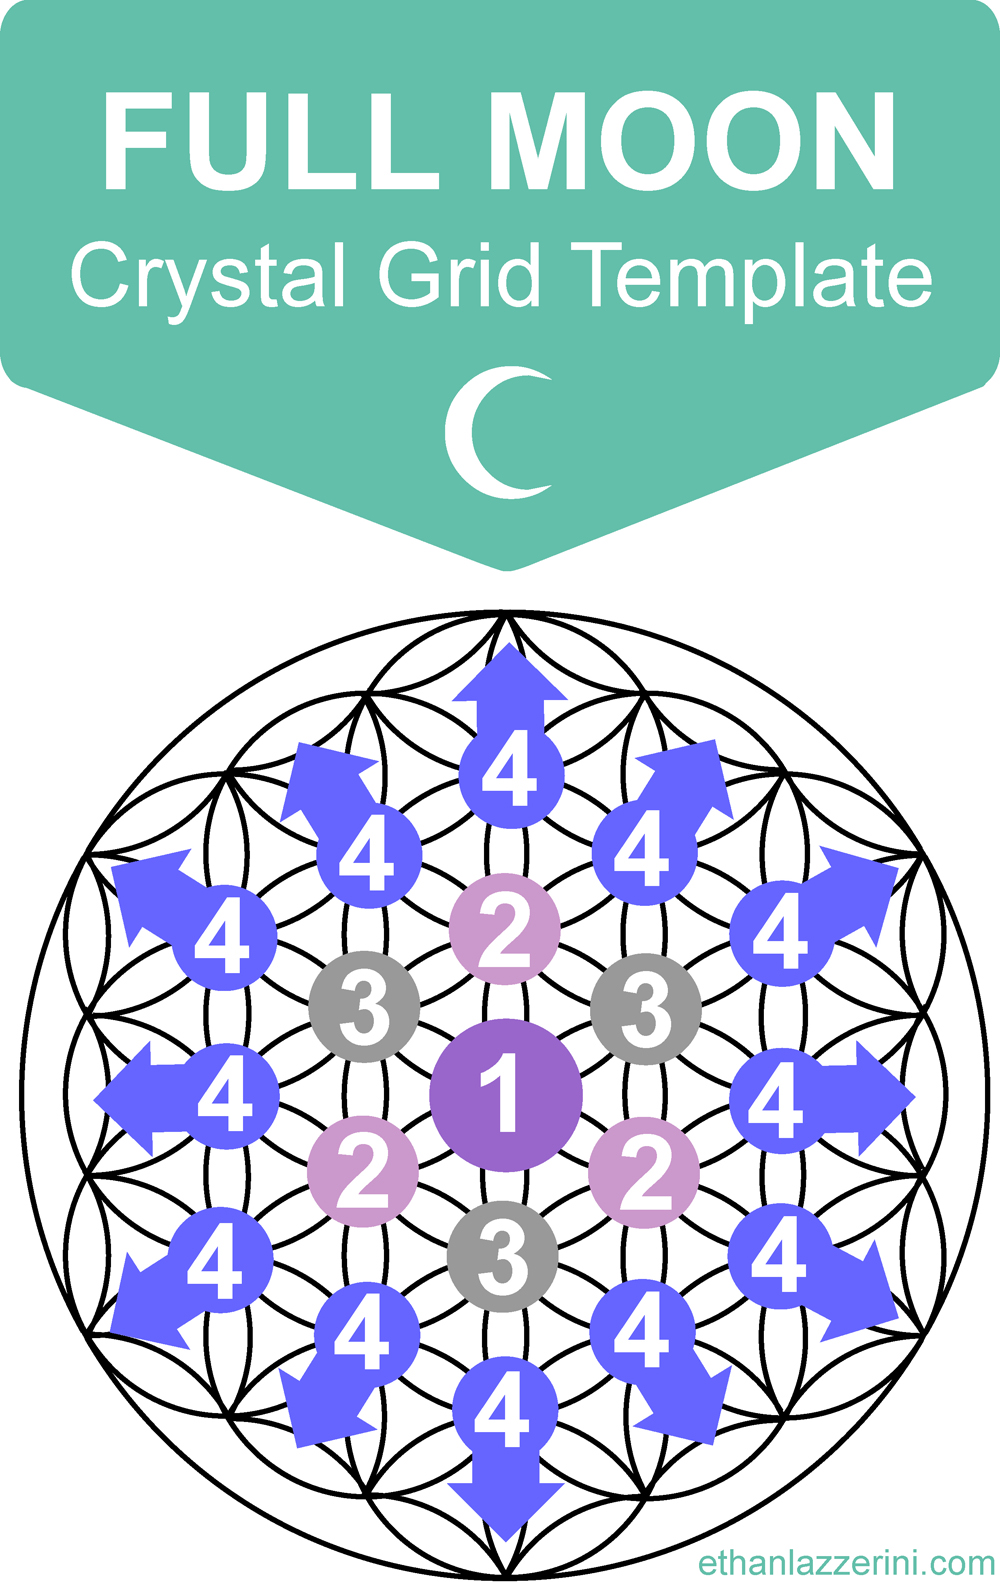 Full moon crystal grid template